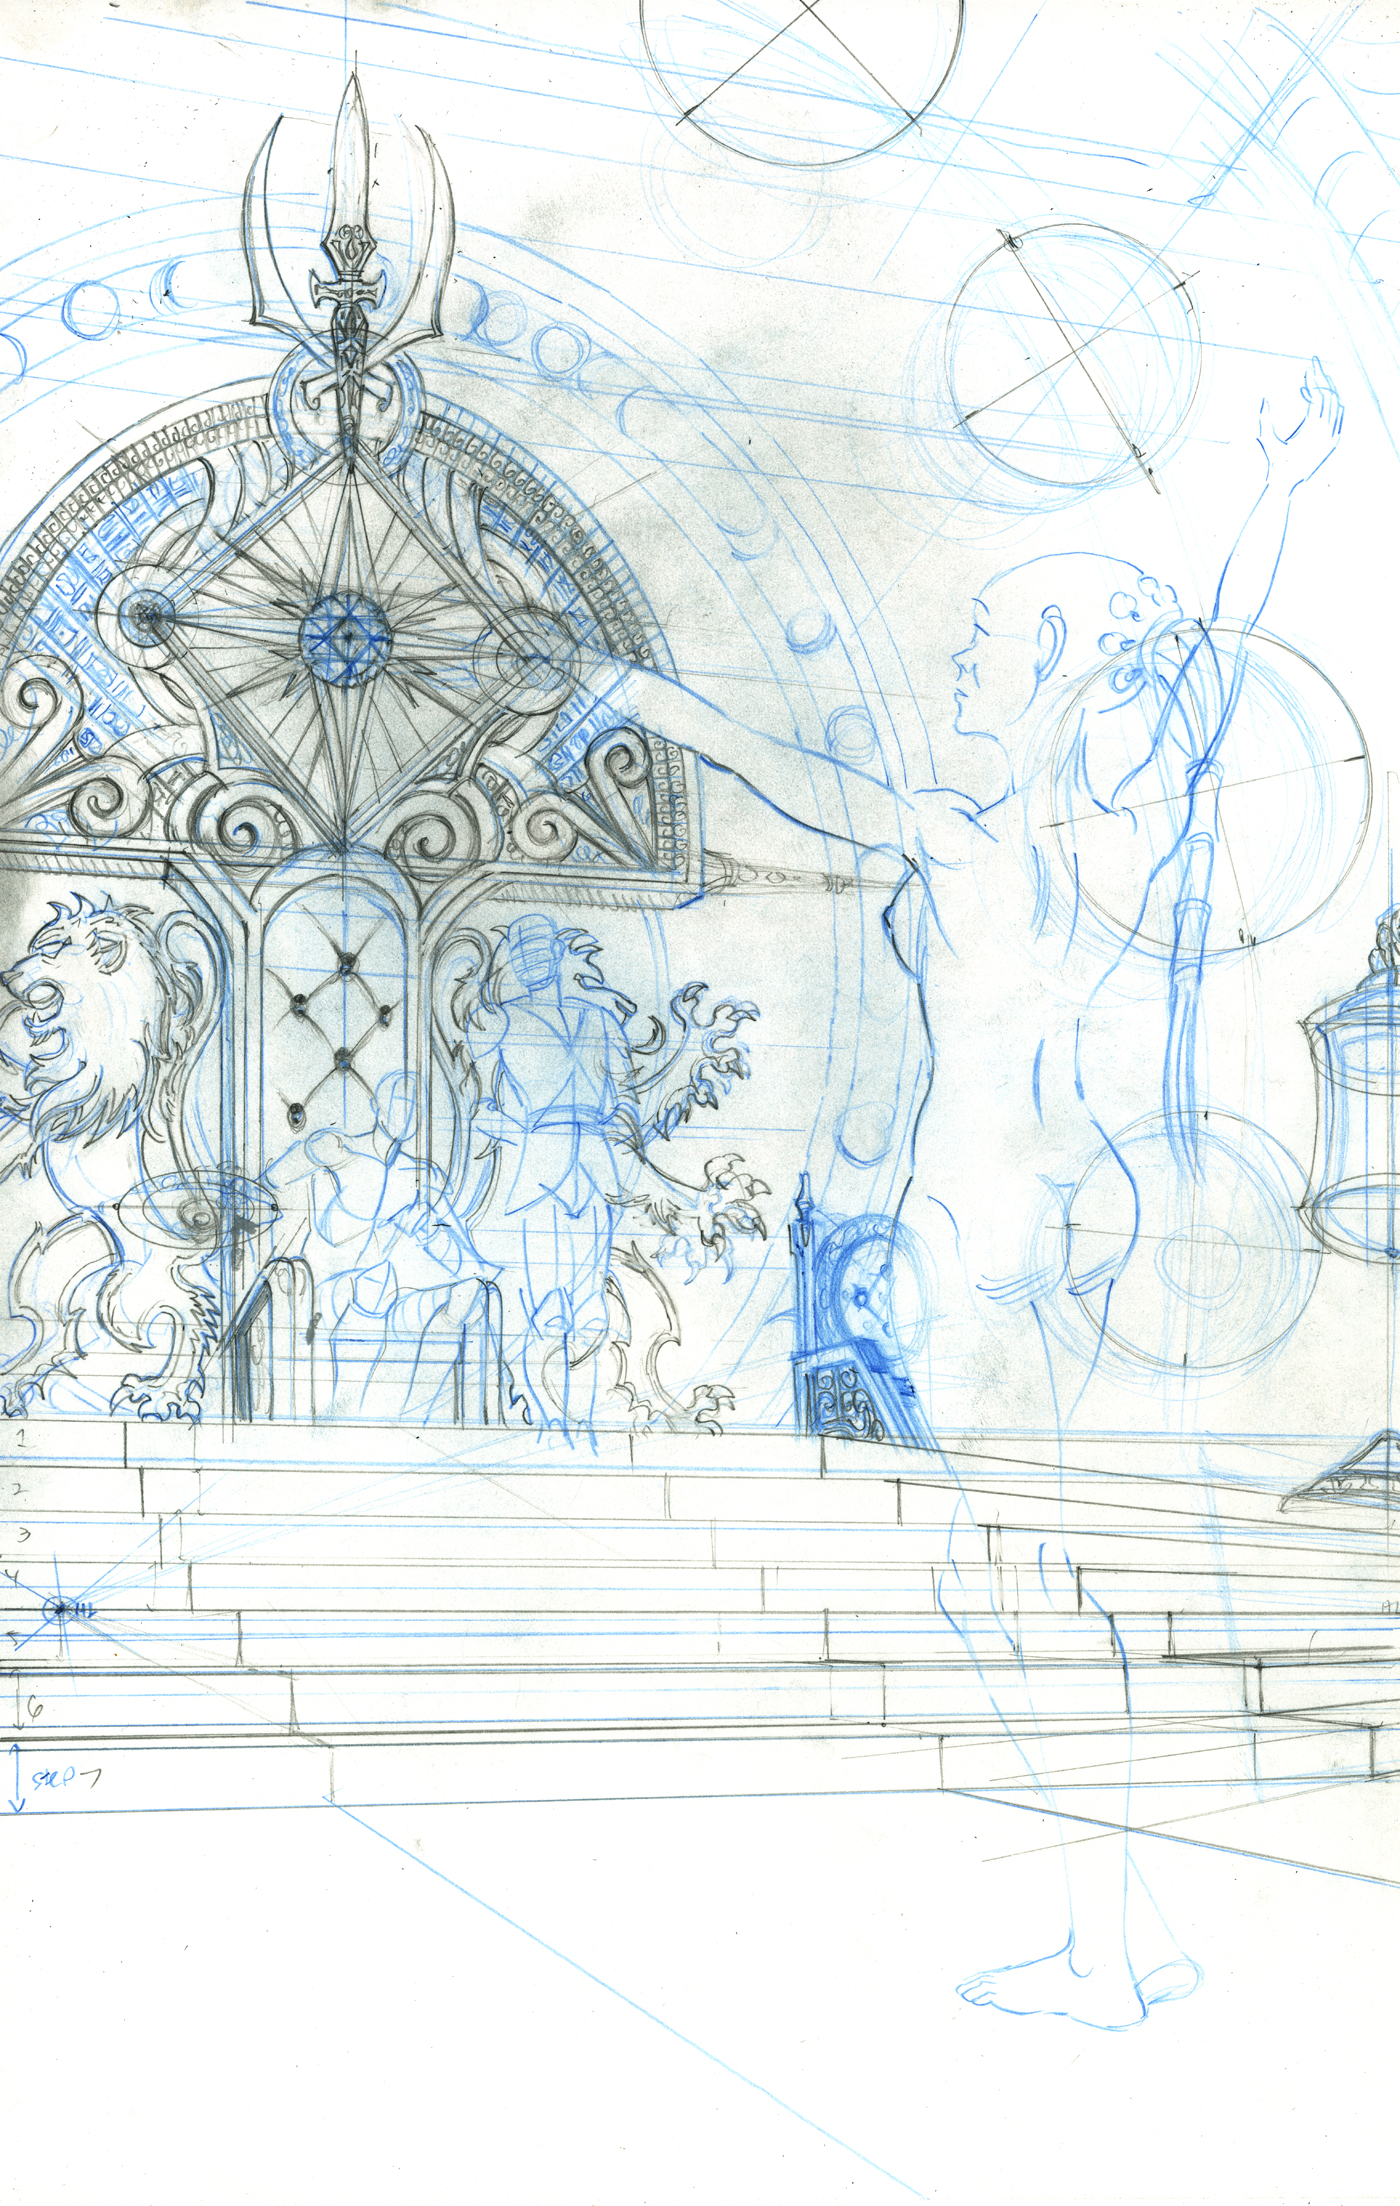 Emperor's Throne Room-Stage 4